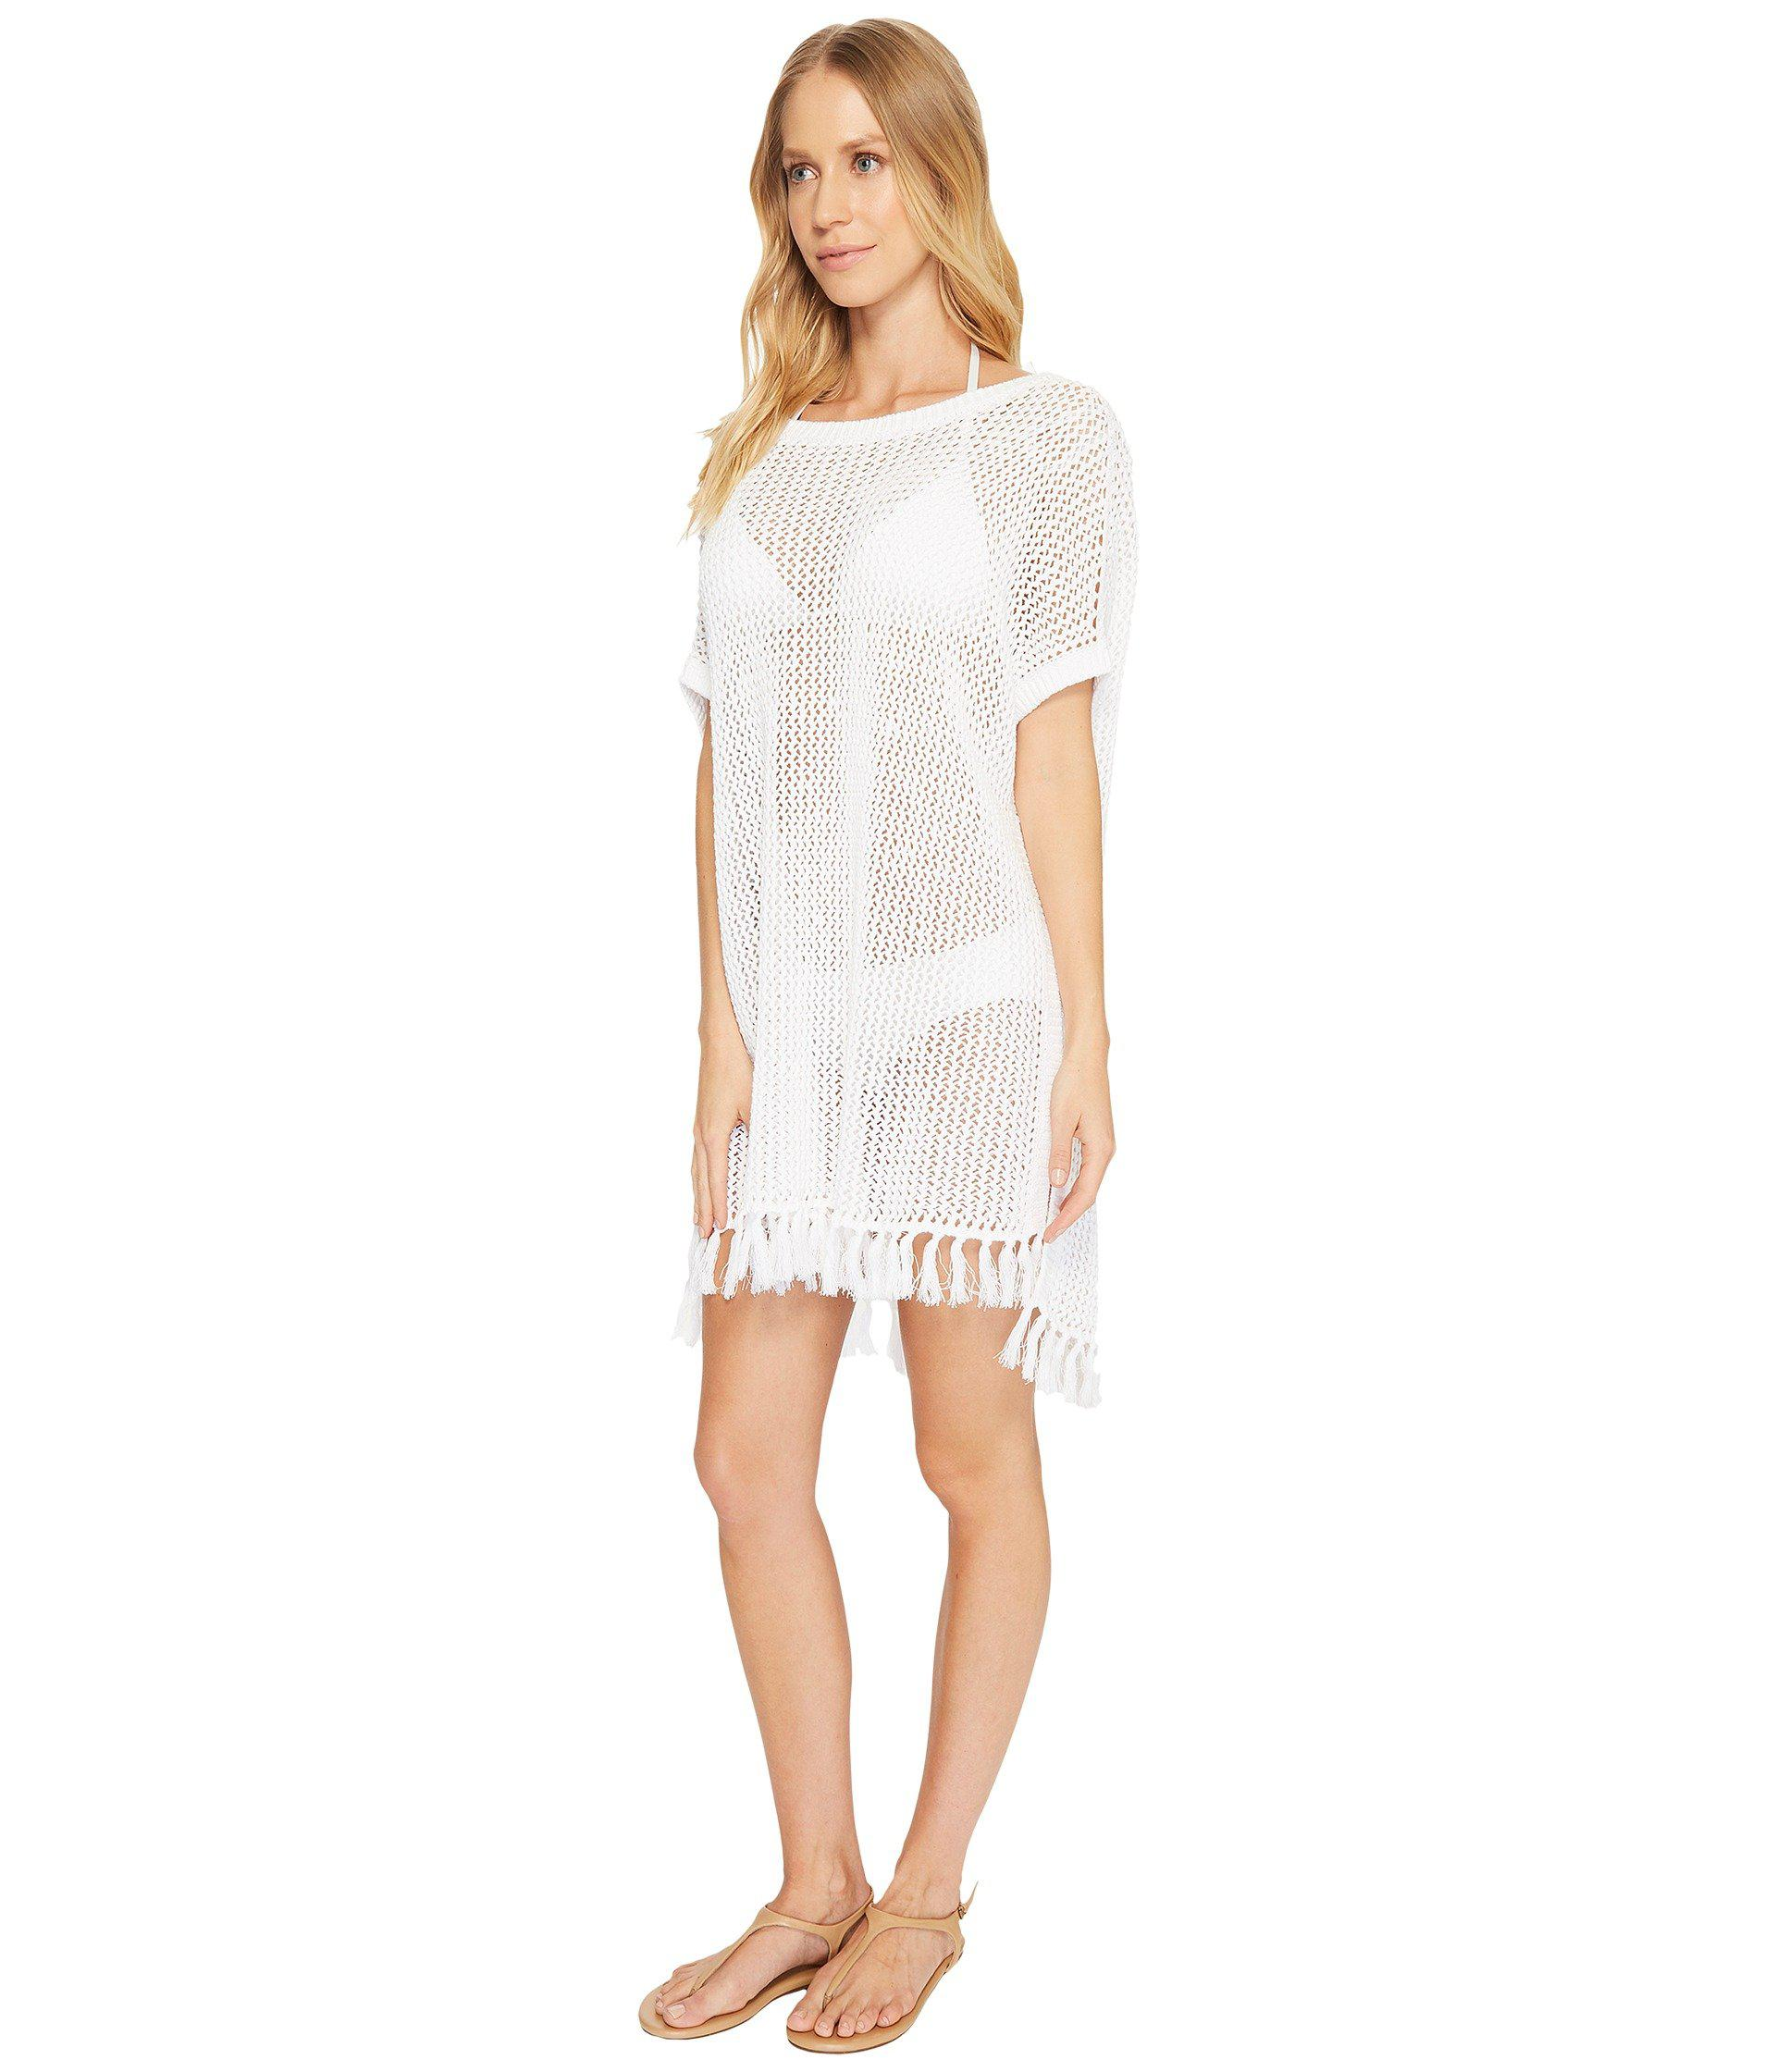 4dcaf262b6d8a Lyst - Tommy Bahama Slouchy Beach Sweater Cover-up in White